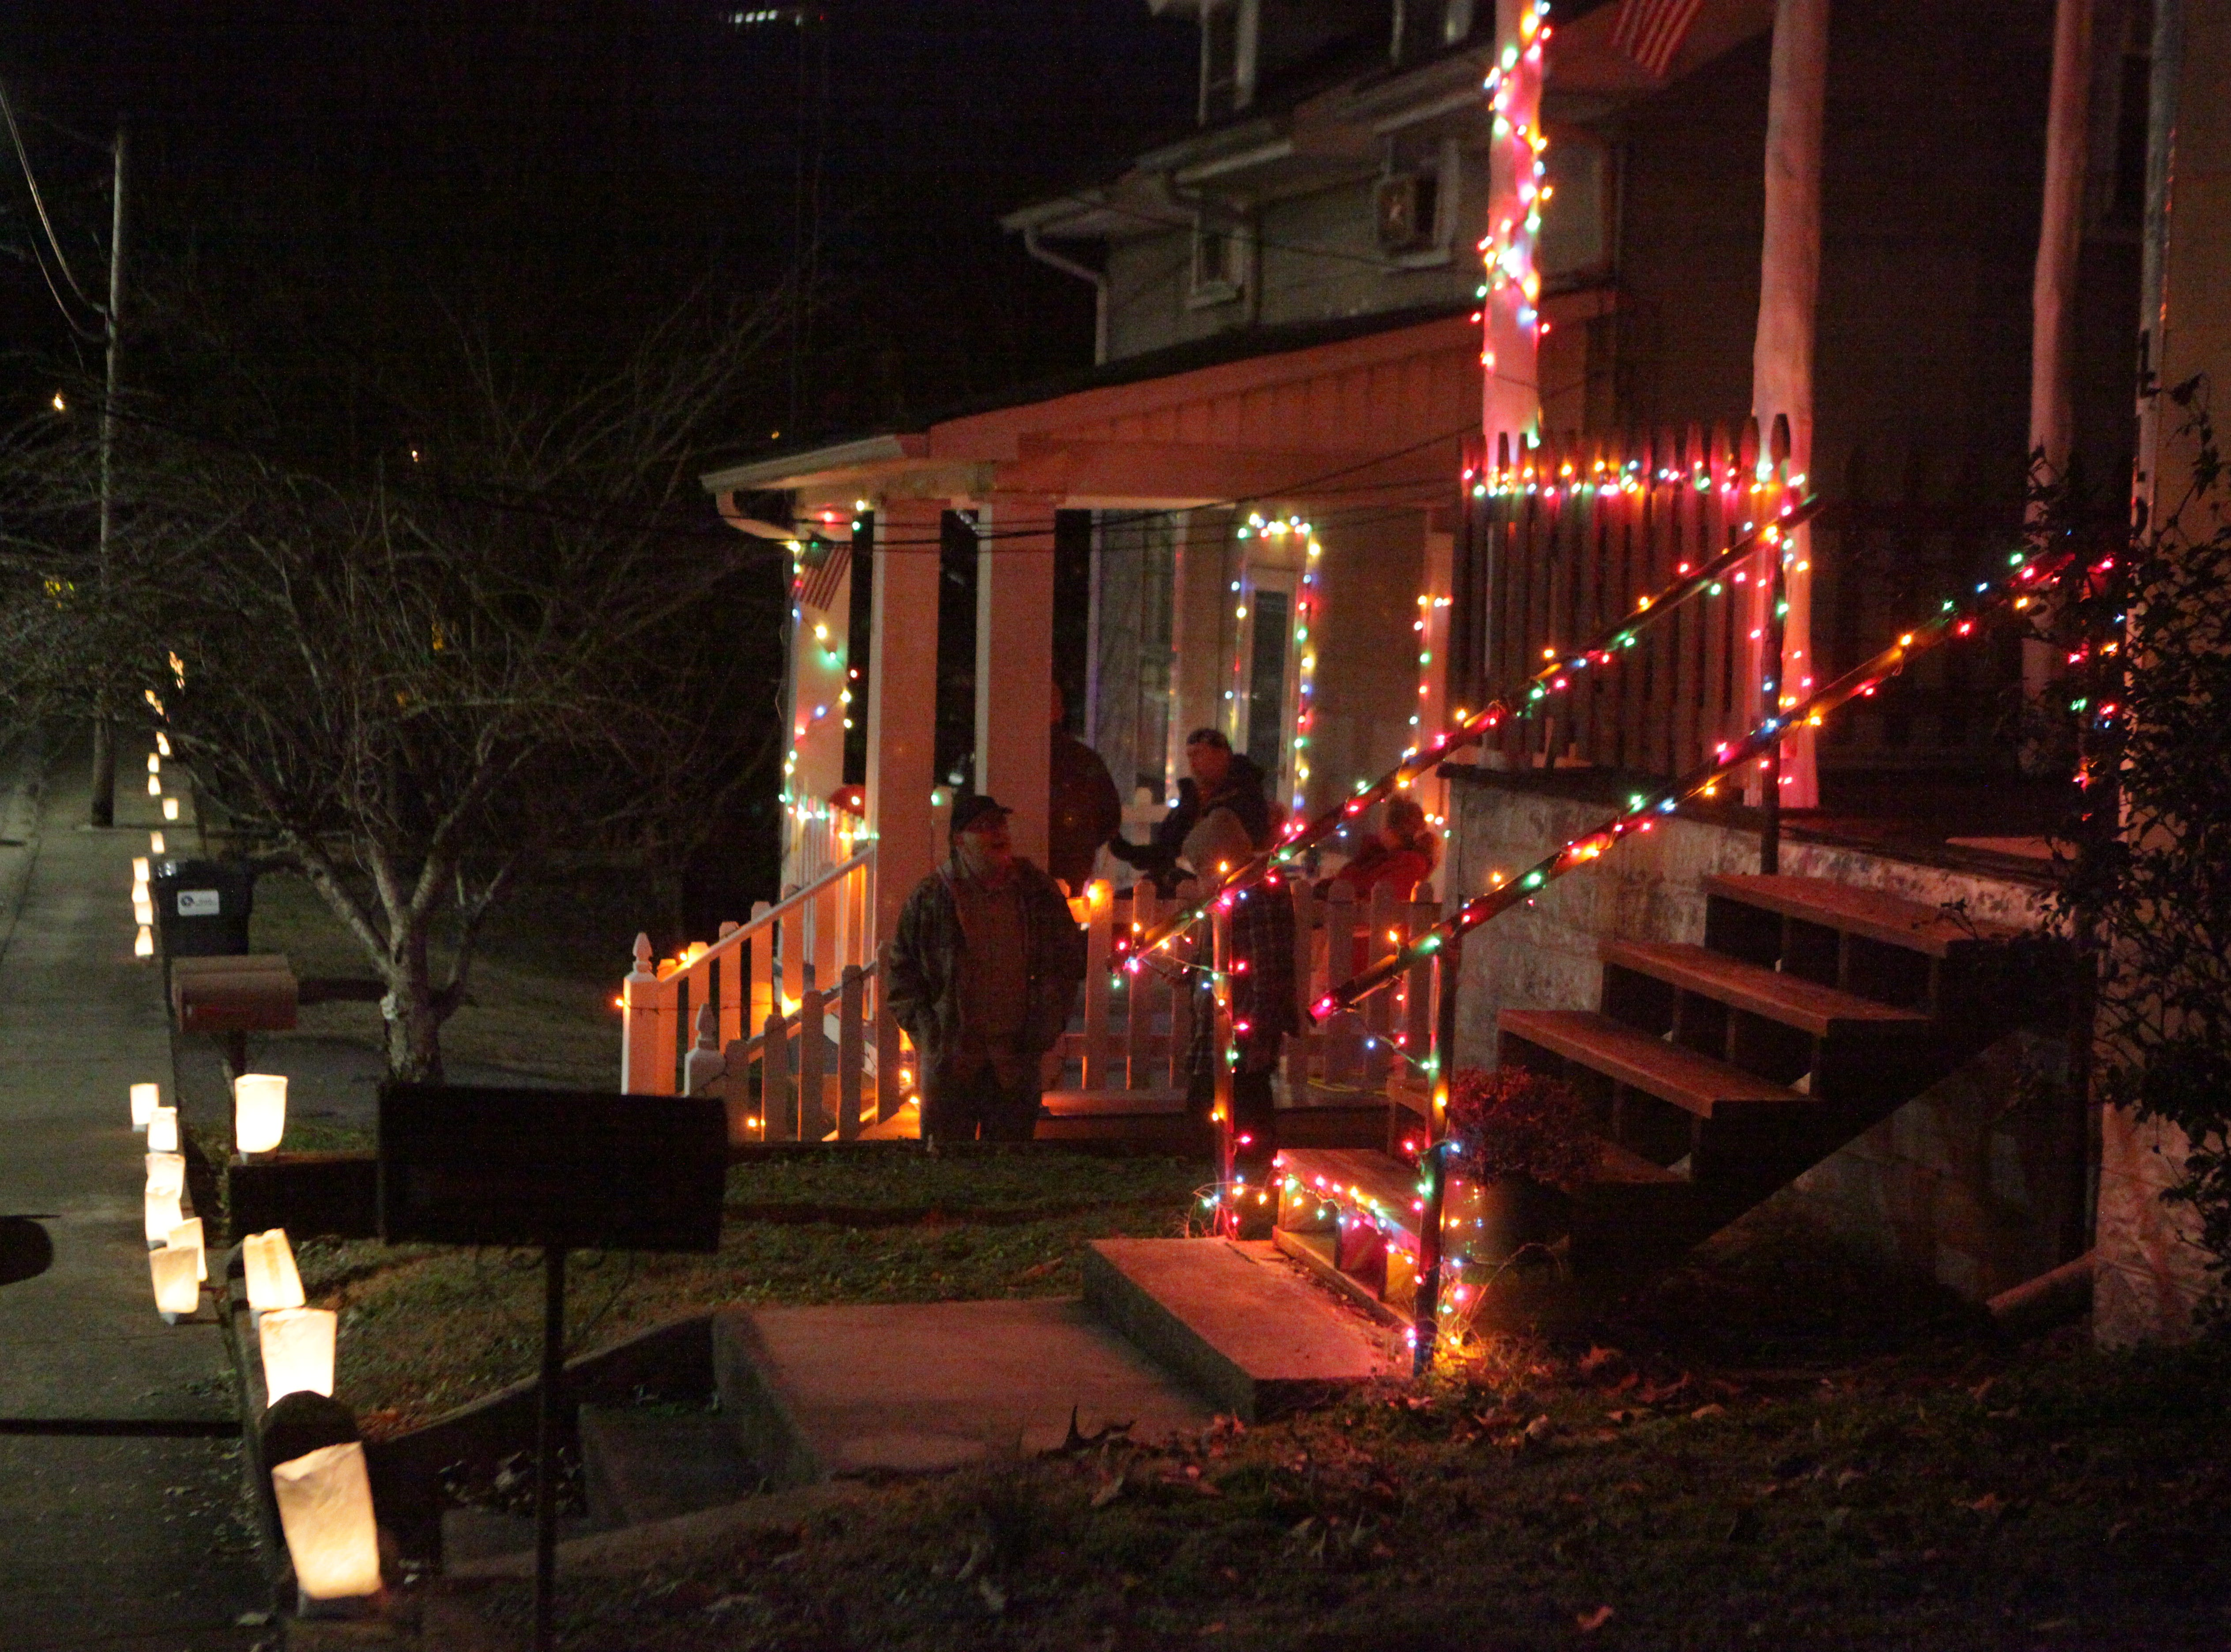 Residents held the annual Illuminating Dog Hill event with candlelit luminaria Saturday, Dec. 22, 2018, in Clarksville, Tenn.